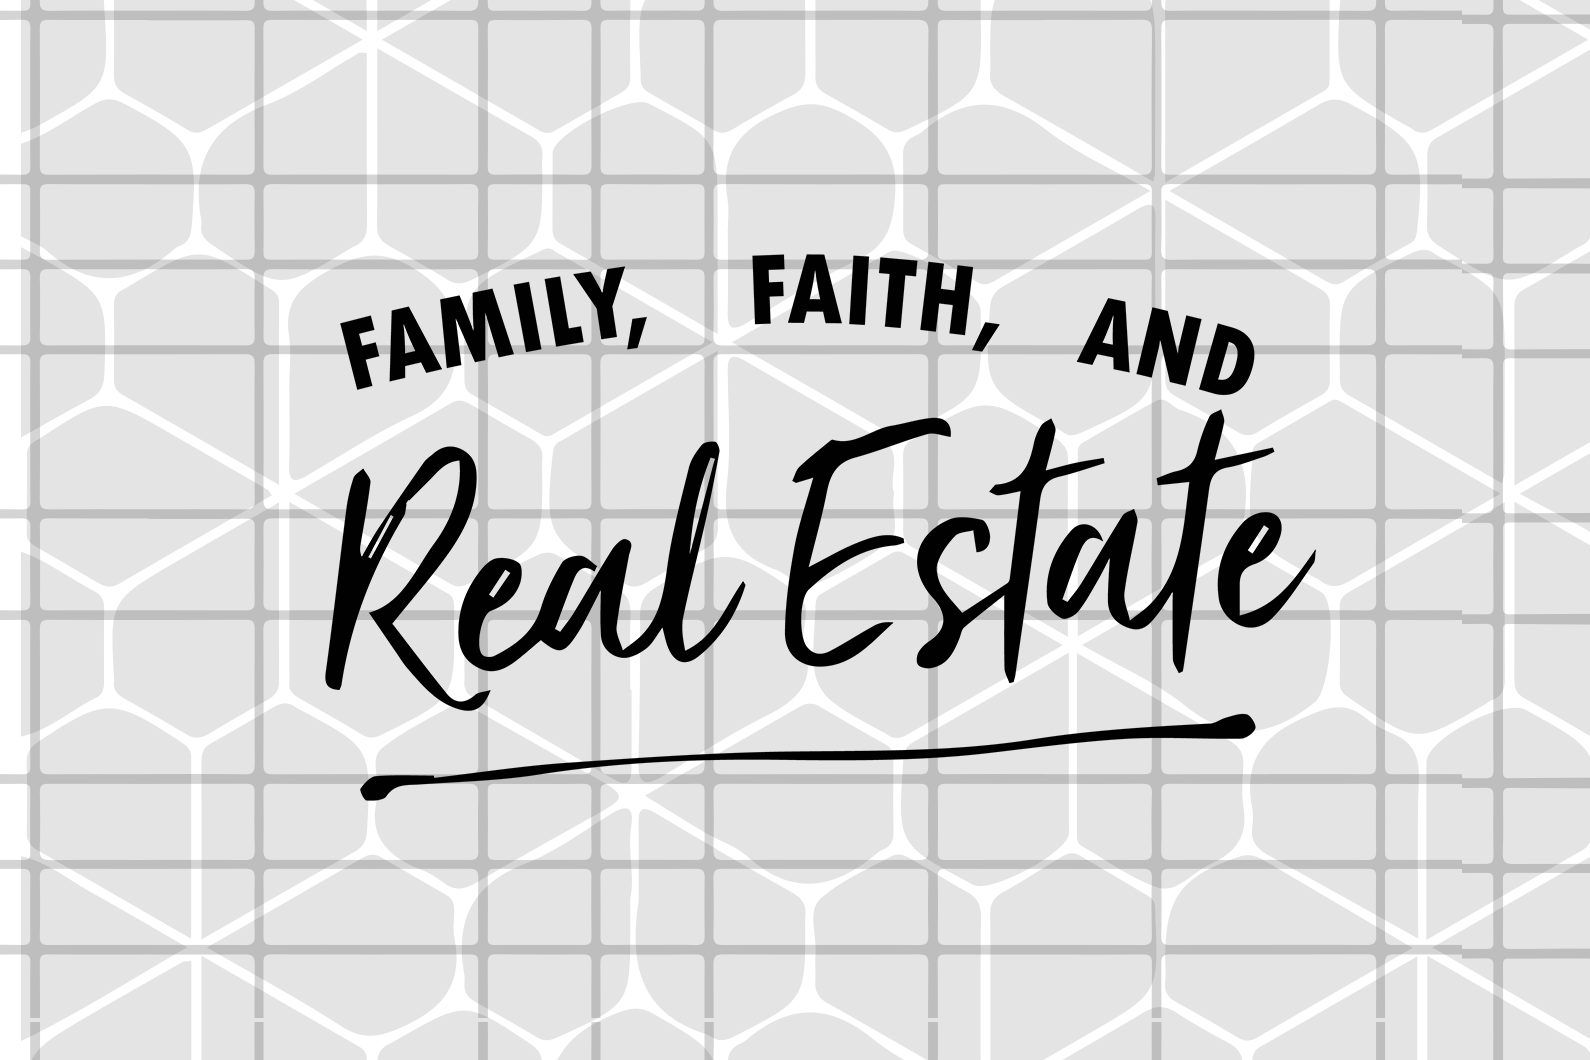 Family faith and real estate, family svg , family shirt,family gift,trending svg, Files For Silhouette, Files For Cricut, SVG, DXF, EPS, PNG, Instant Download